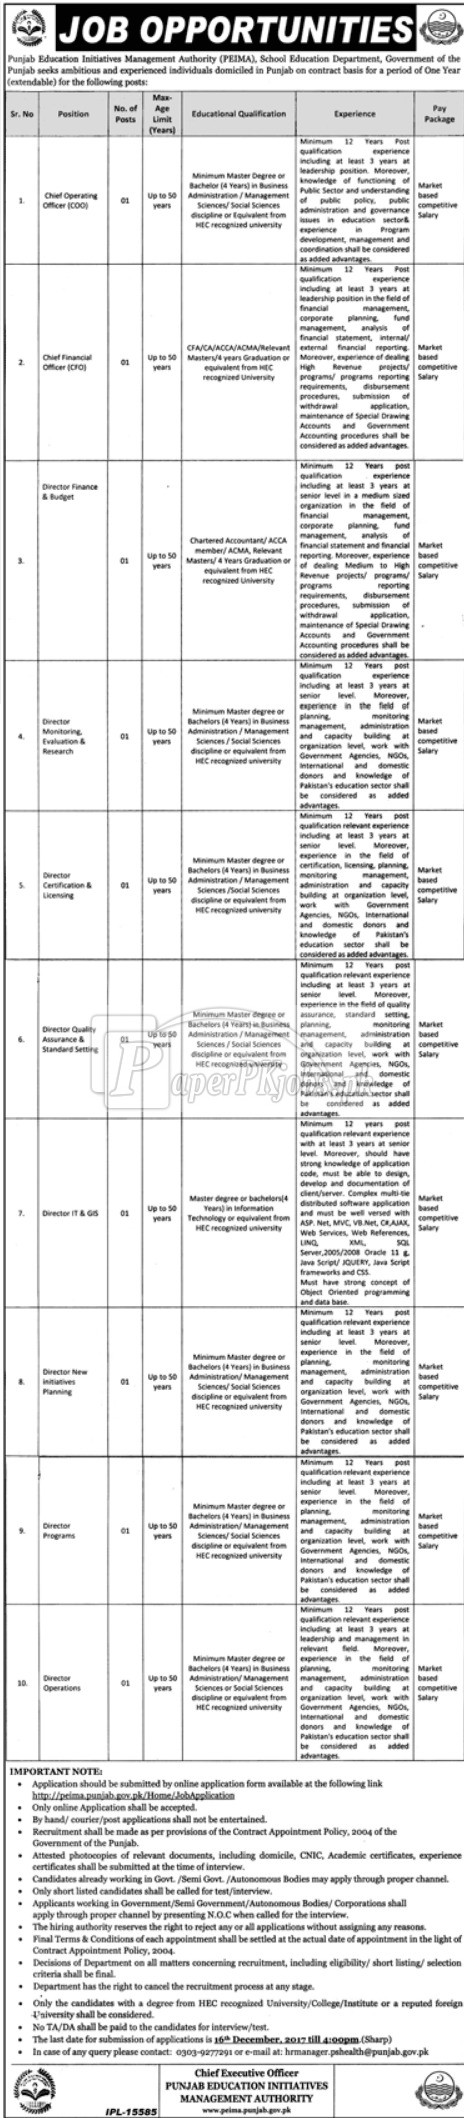 Punjab Education Initiative Management Authority PEIMA School Education Department Jobs 2017